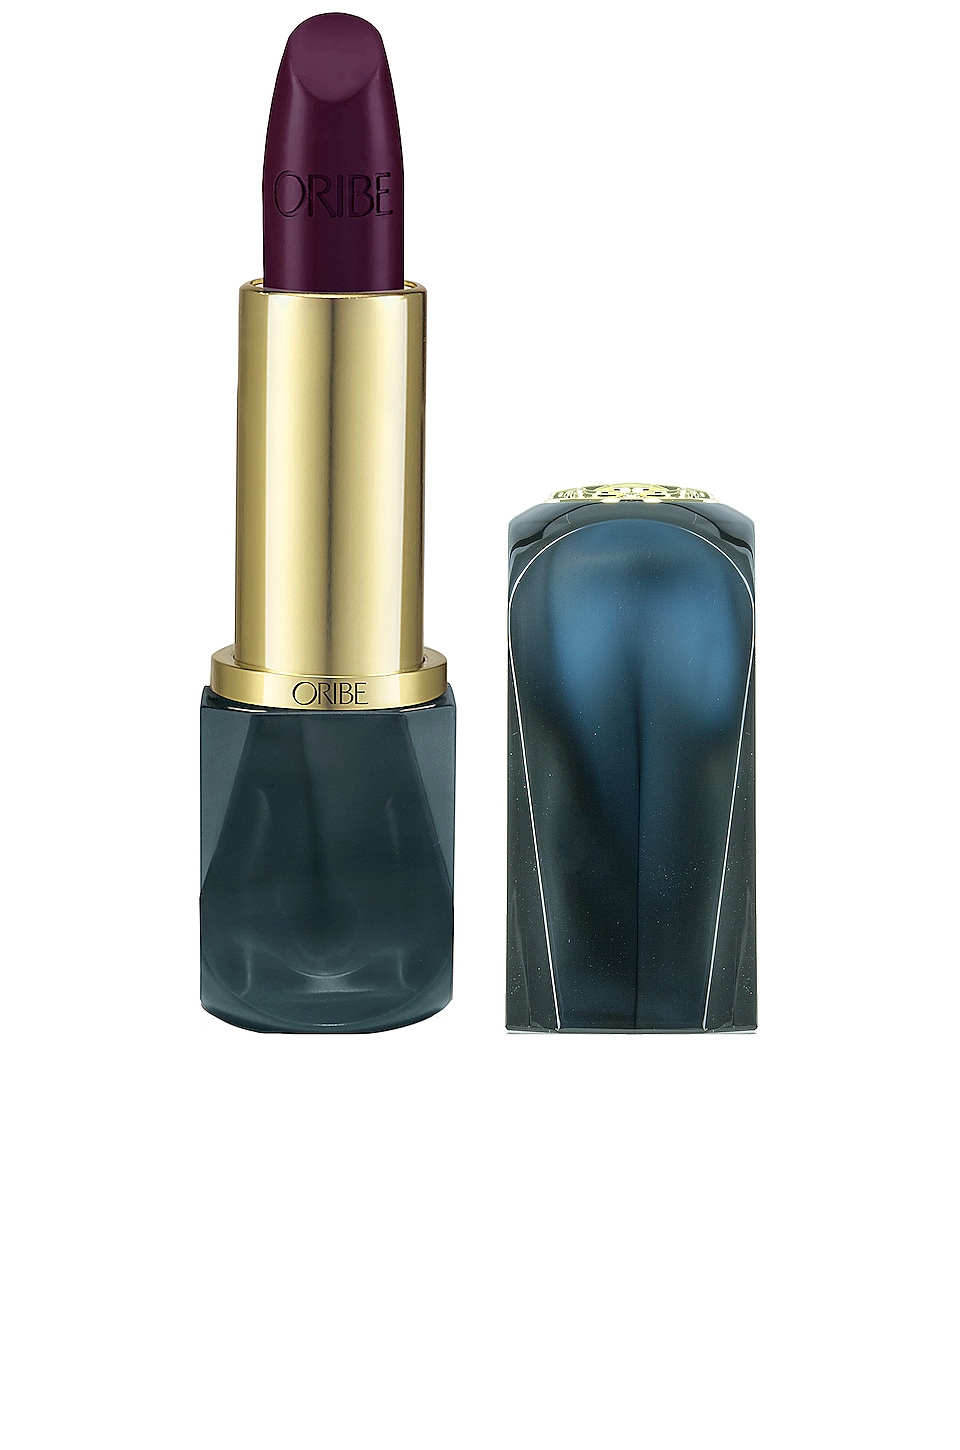 Oribe Lip Lust Creme Lipstick in The Violet